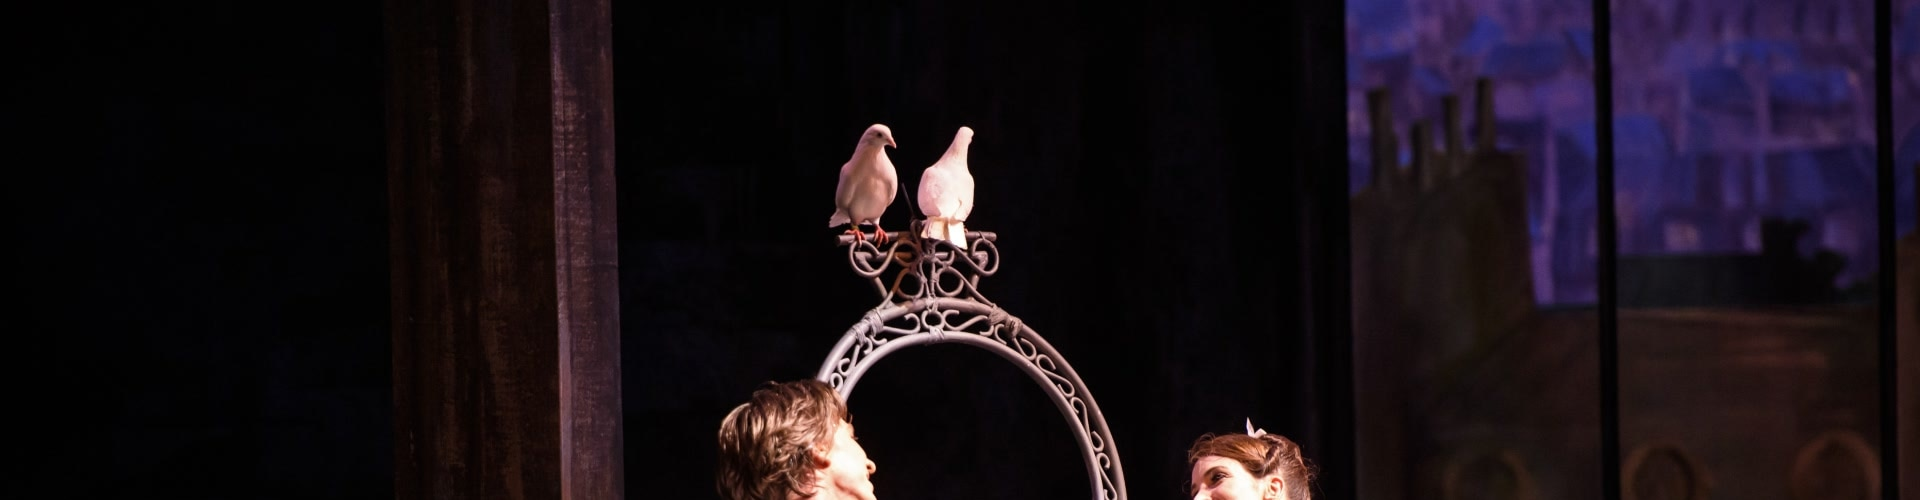 Watch Rhapsody/The Two Pigeons Online